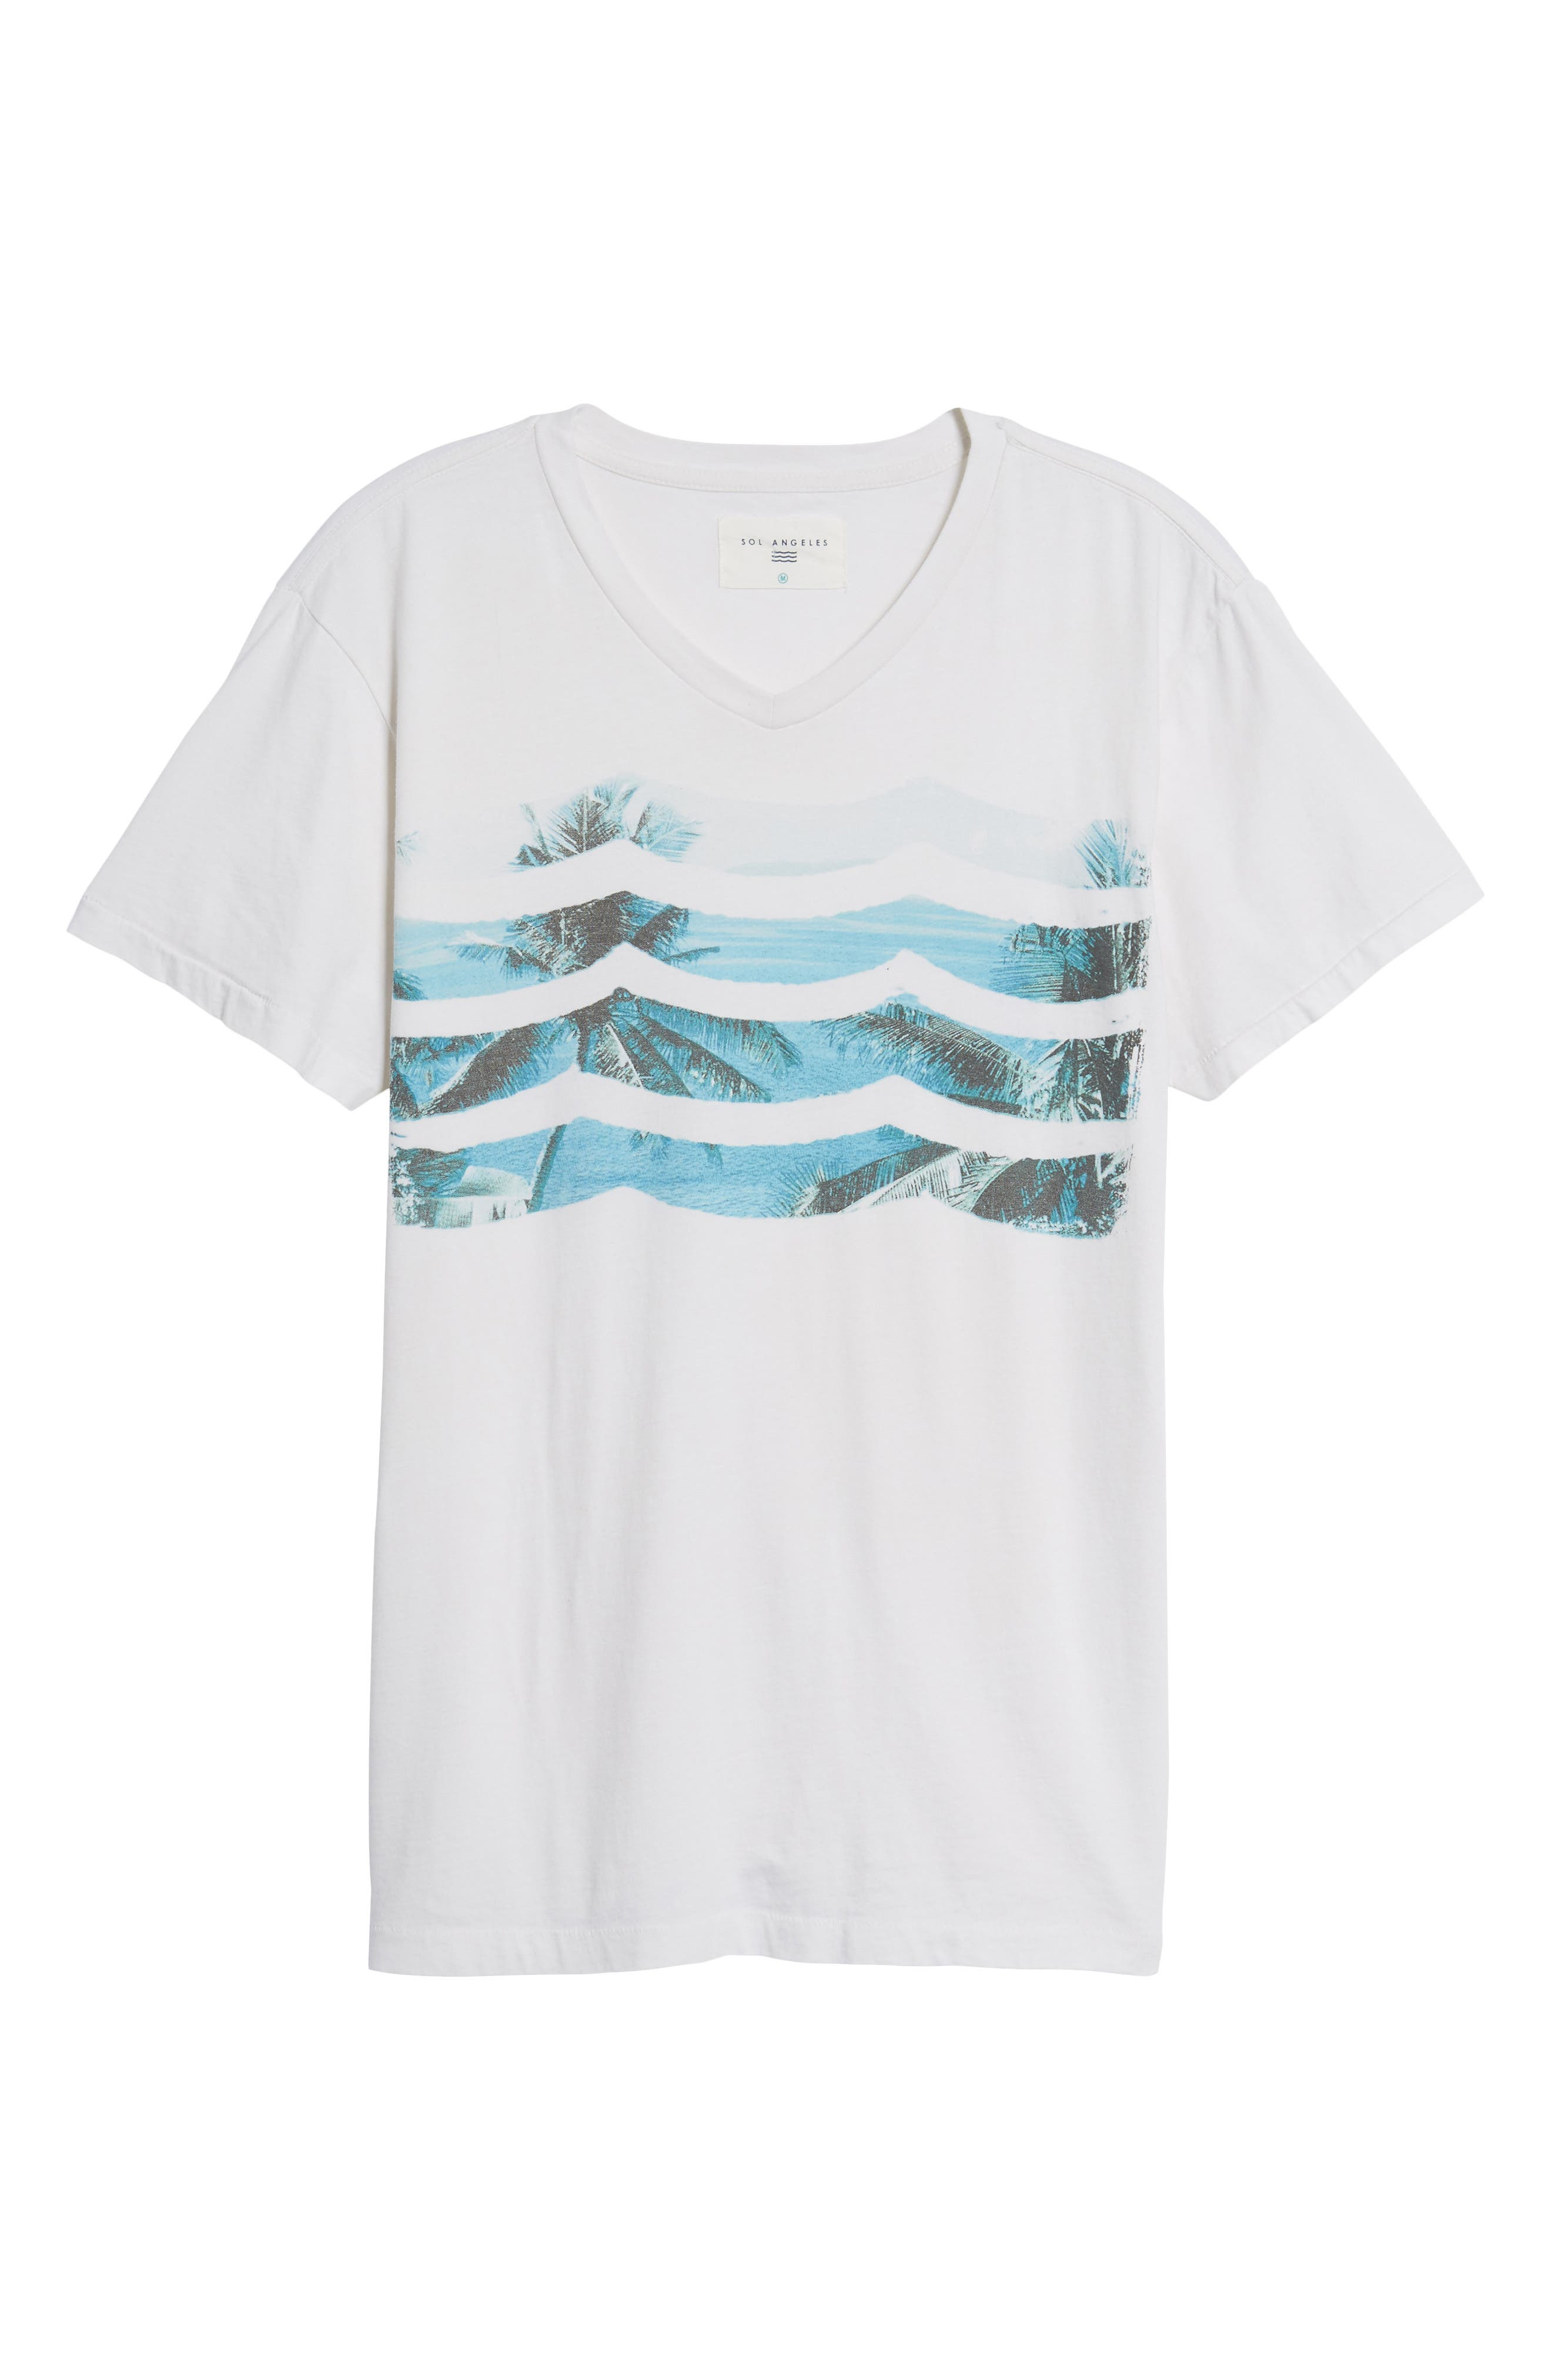 Vista Del Mar T-Shirt,                             Alternate thumbnail 6, color,                             D White